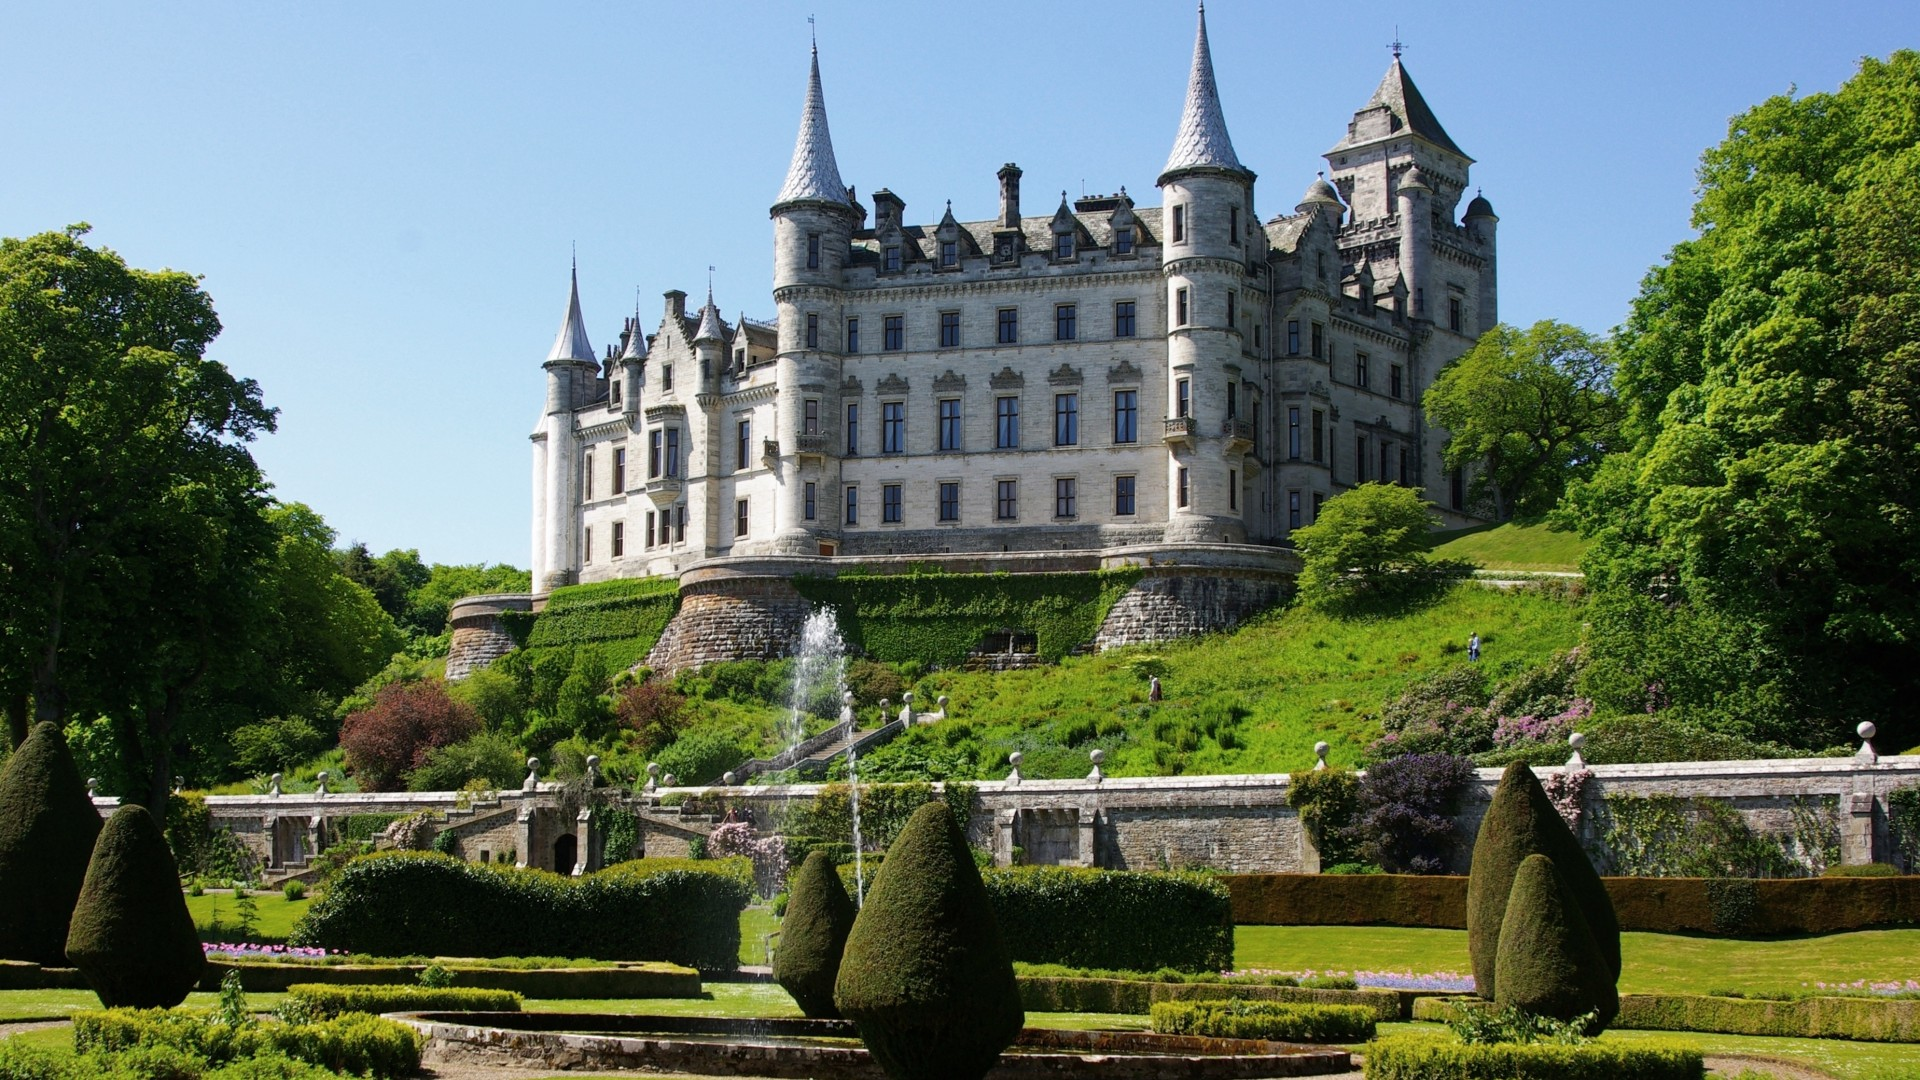 Dunrobin, Сastle, Scotland, sutherland, fountain, garden, sky, green, travel, booking, vacation (horizontal)